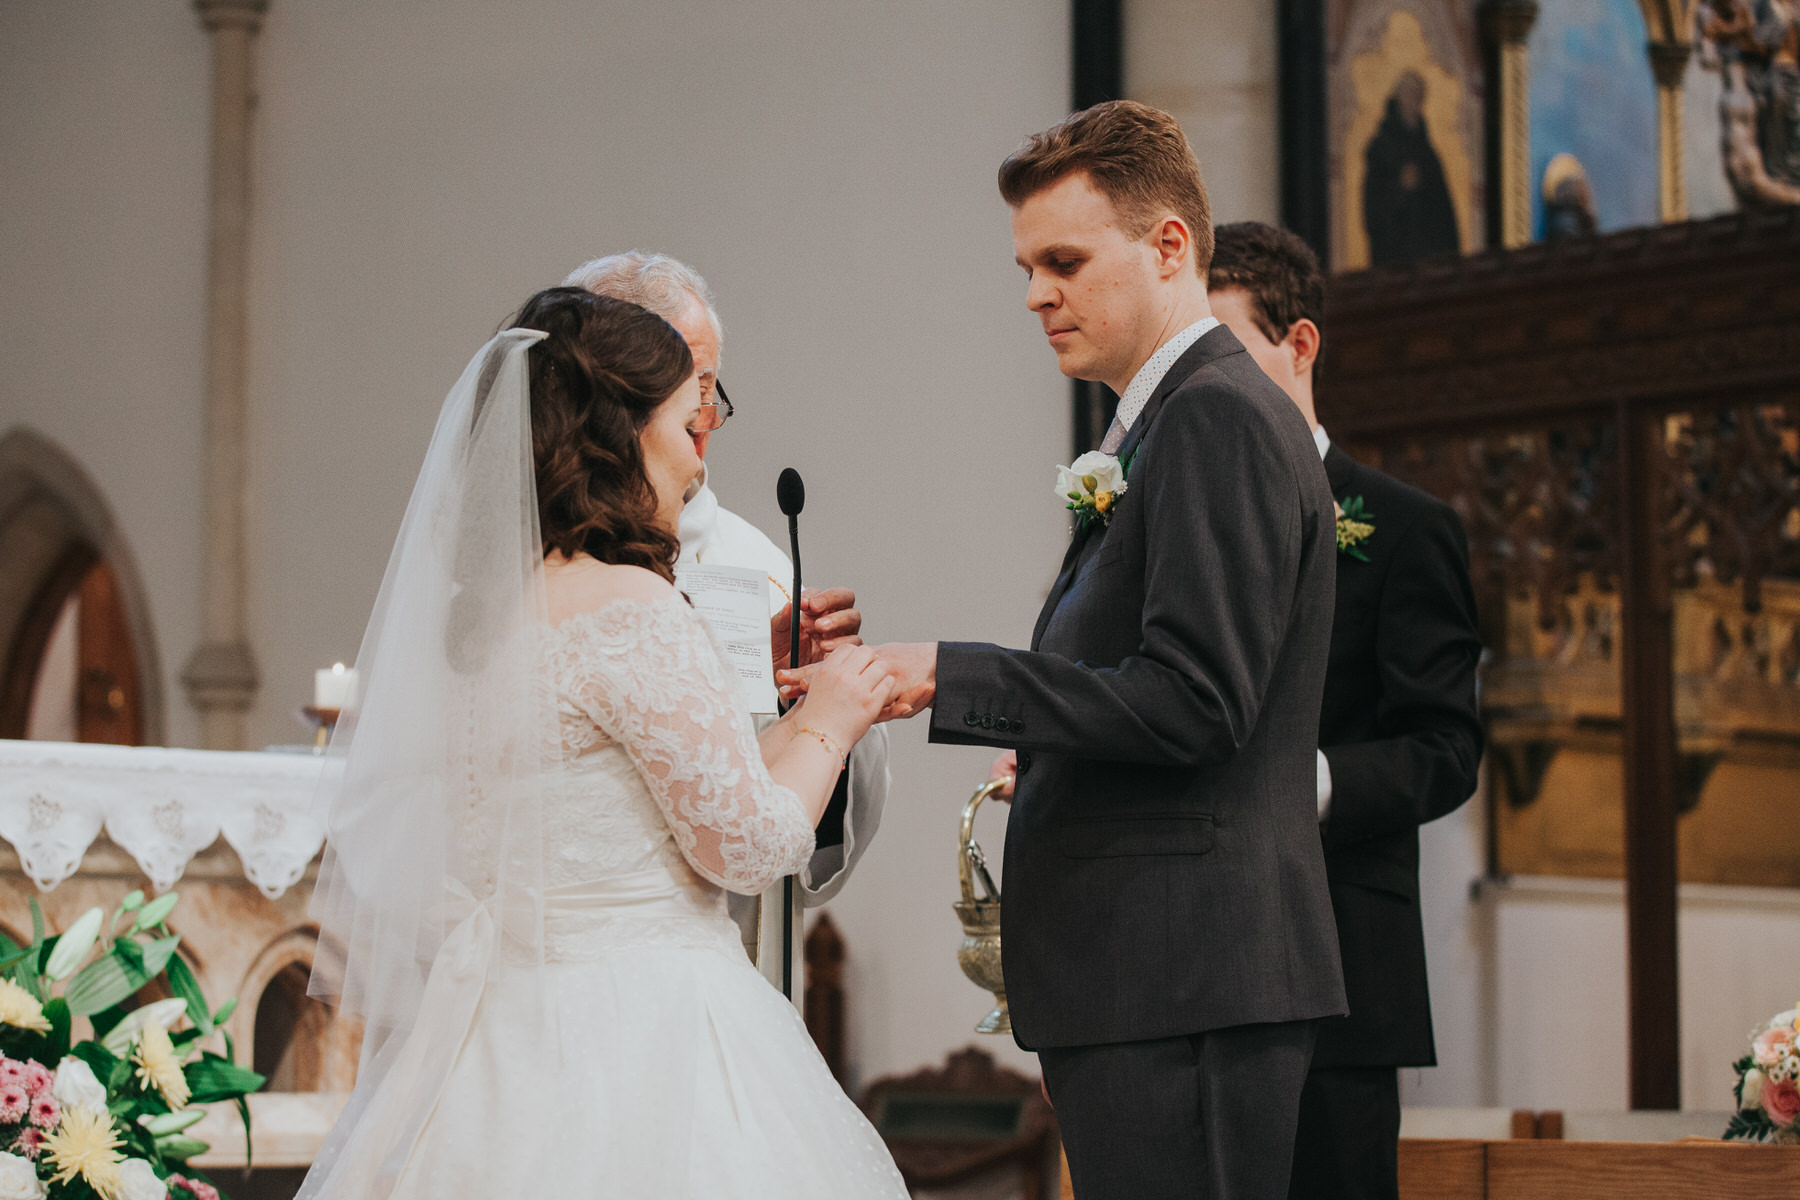 54 exchange of rings during Catholic Church wedding.jpg